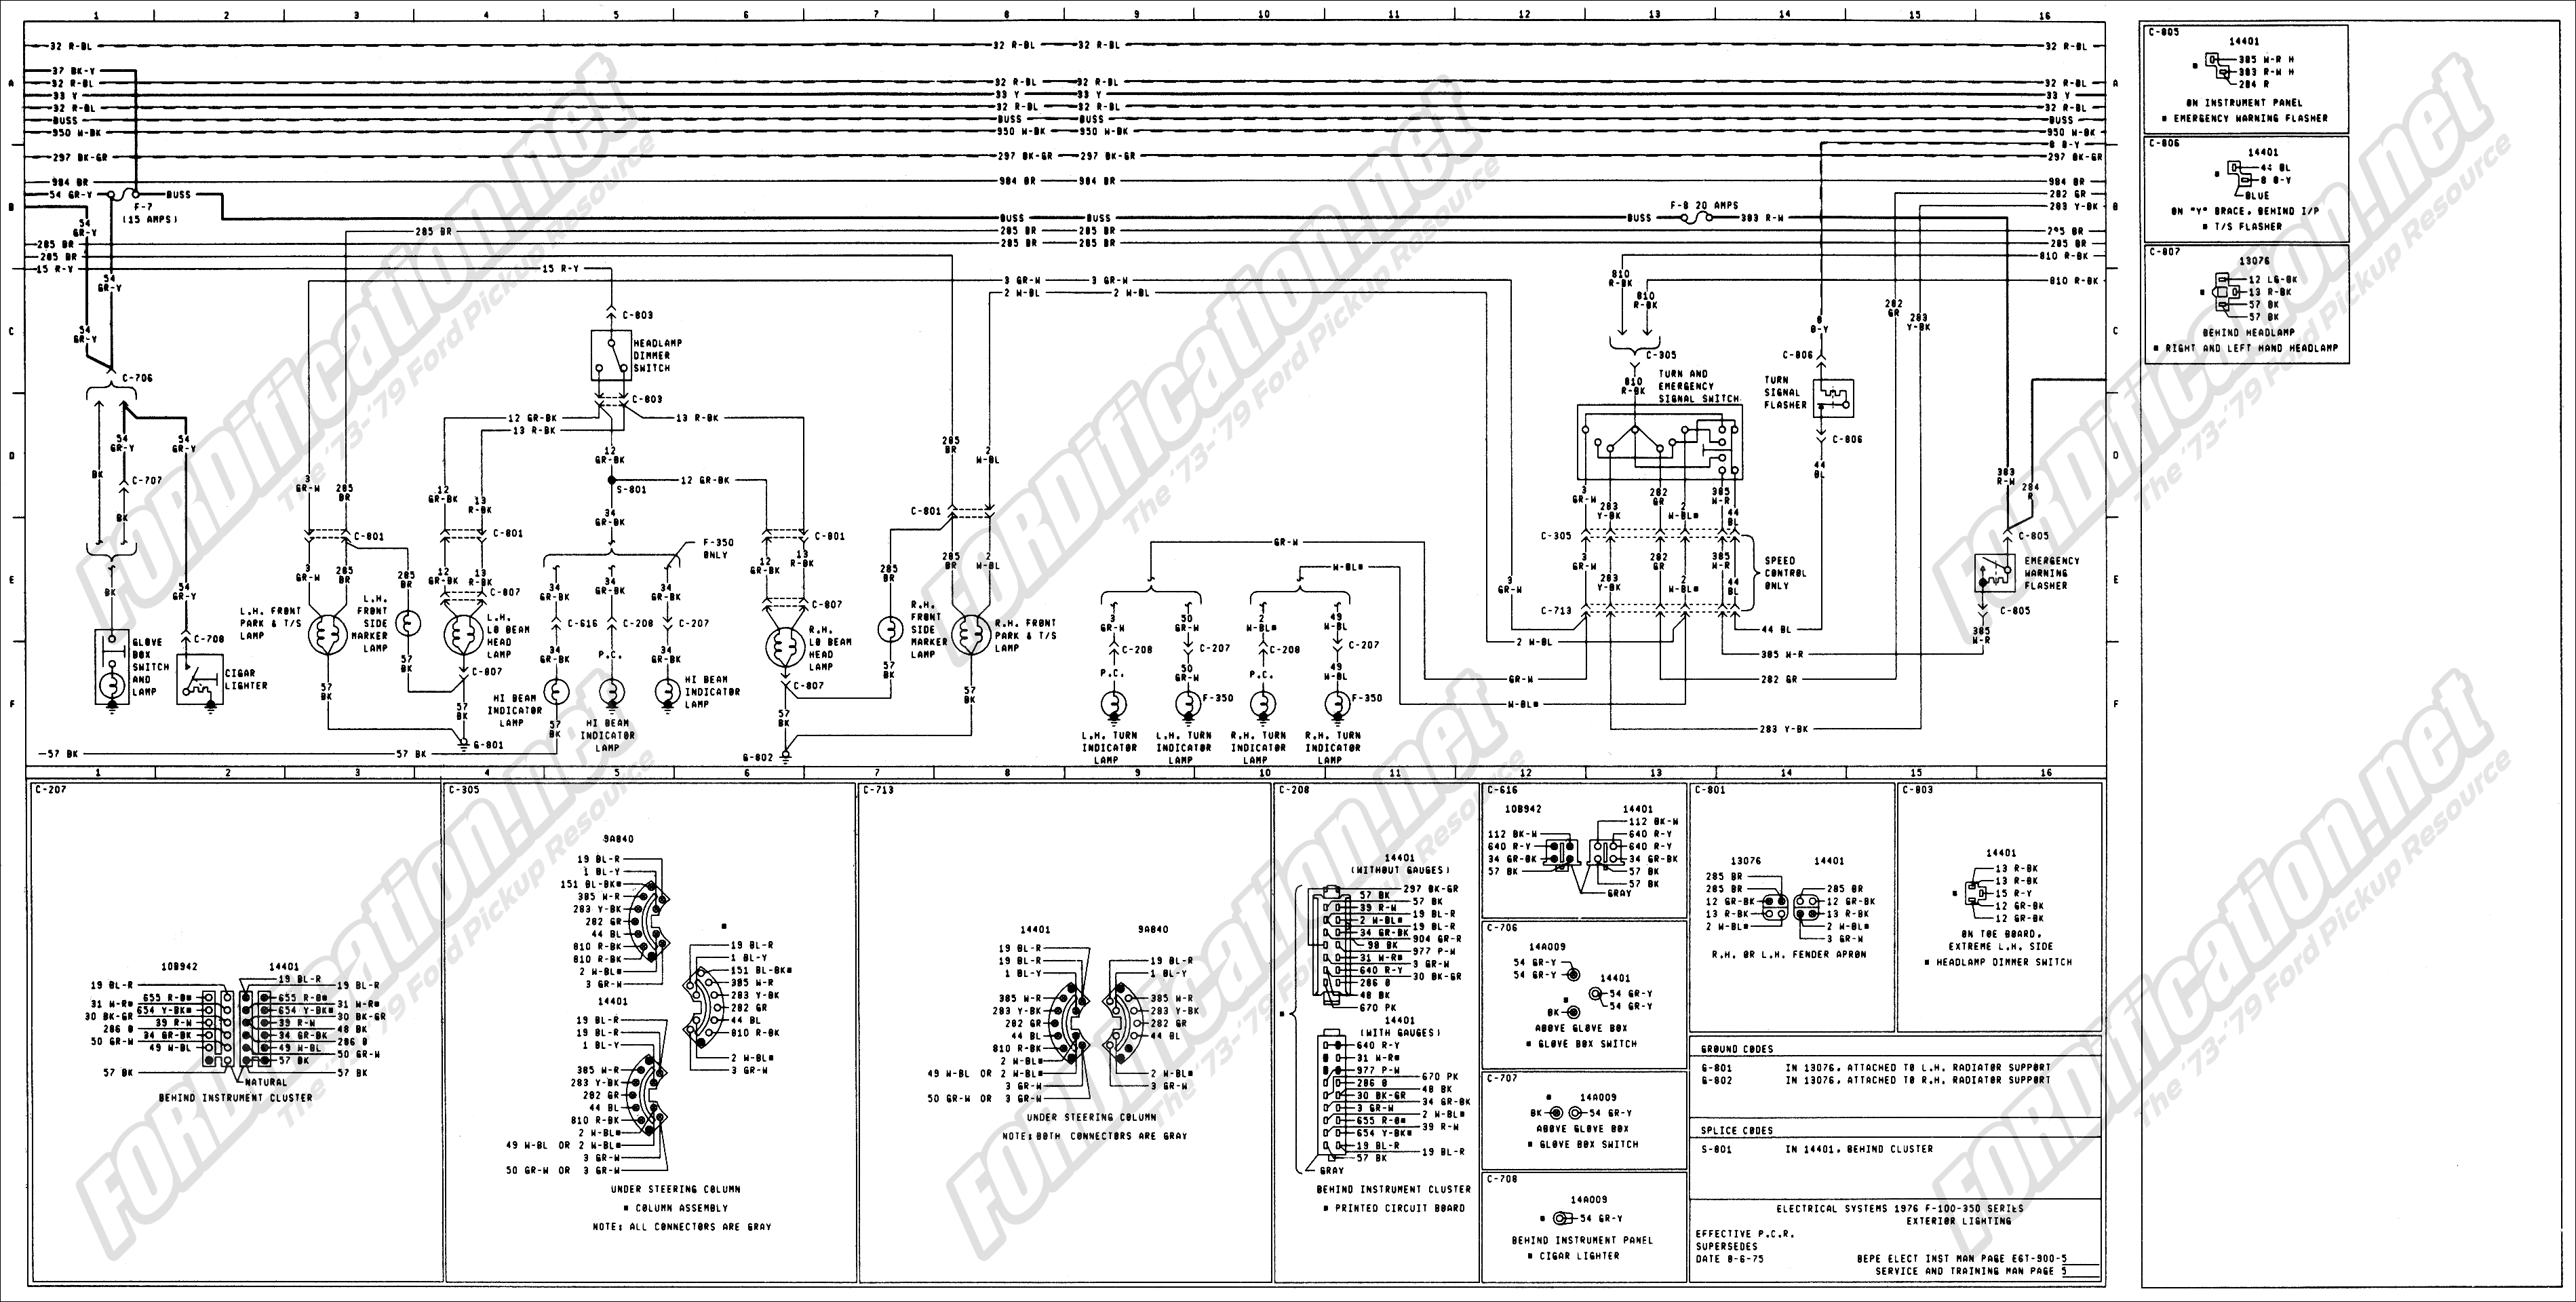 wiring_76master_5of9 1969 ford f100 wiring diagram 1969 chevrolet impala wiring diagram  at webbmarketing.co